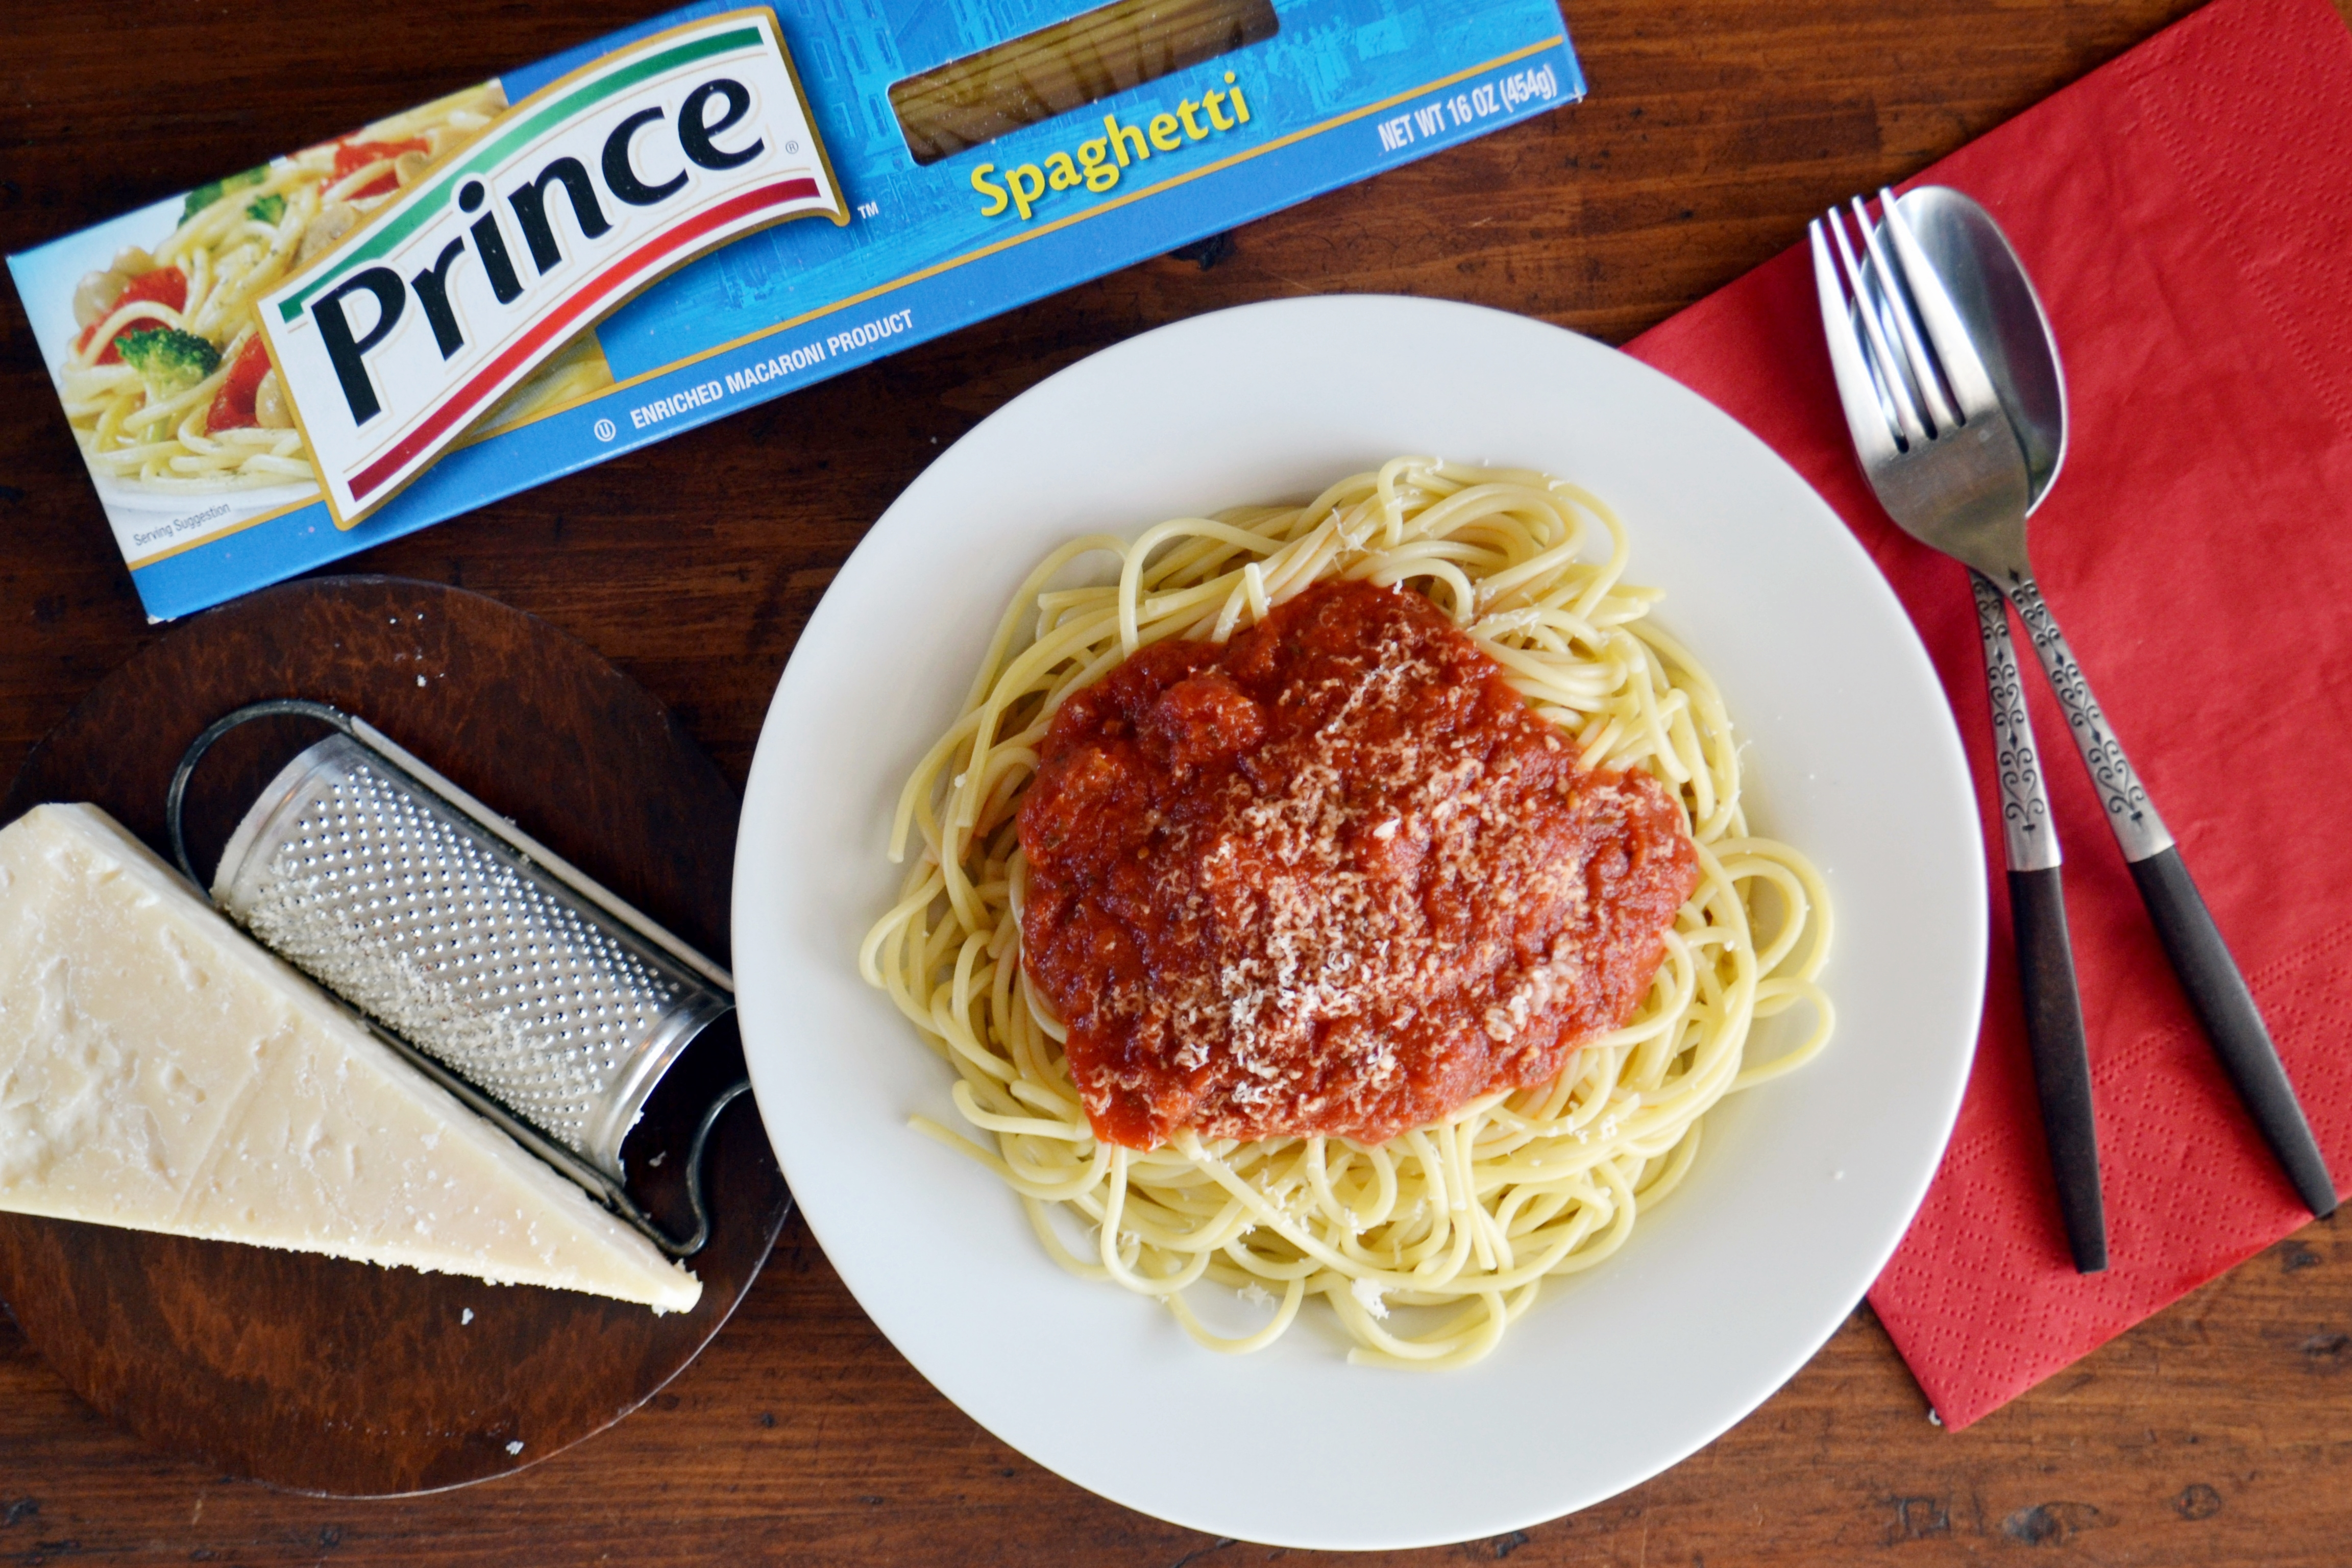 Wednesday is Prince Spaghetti Day